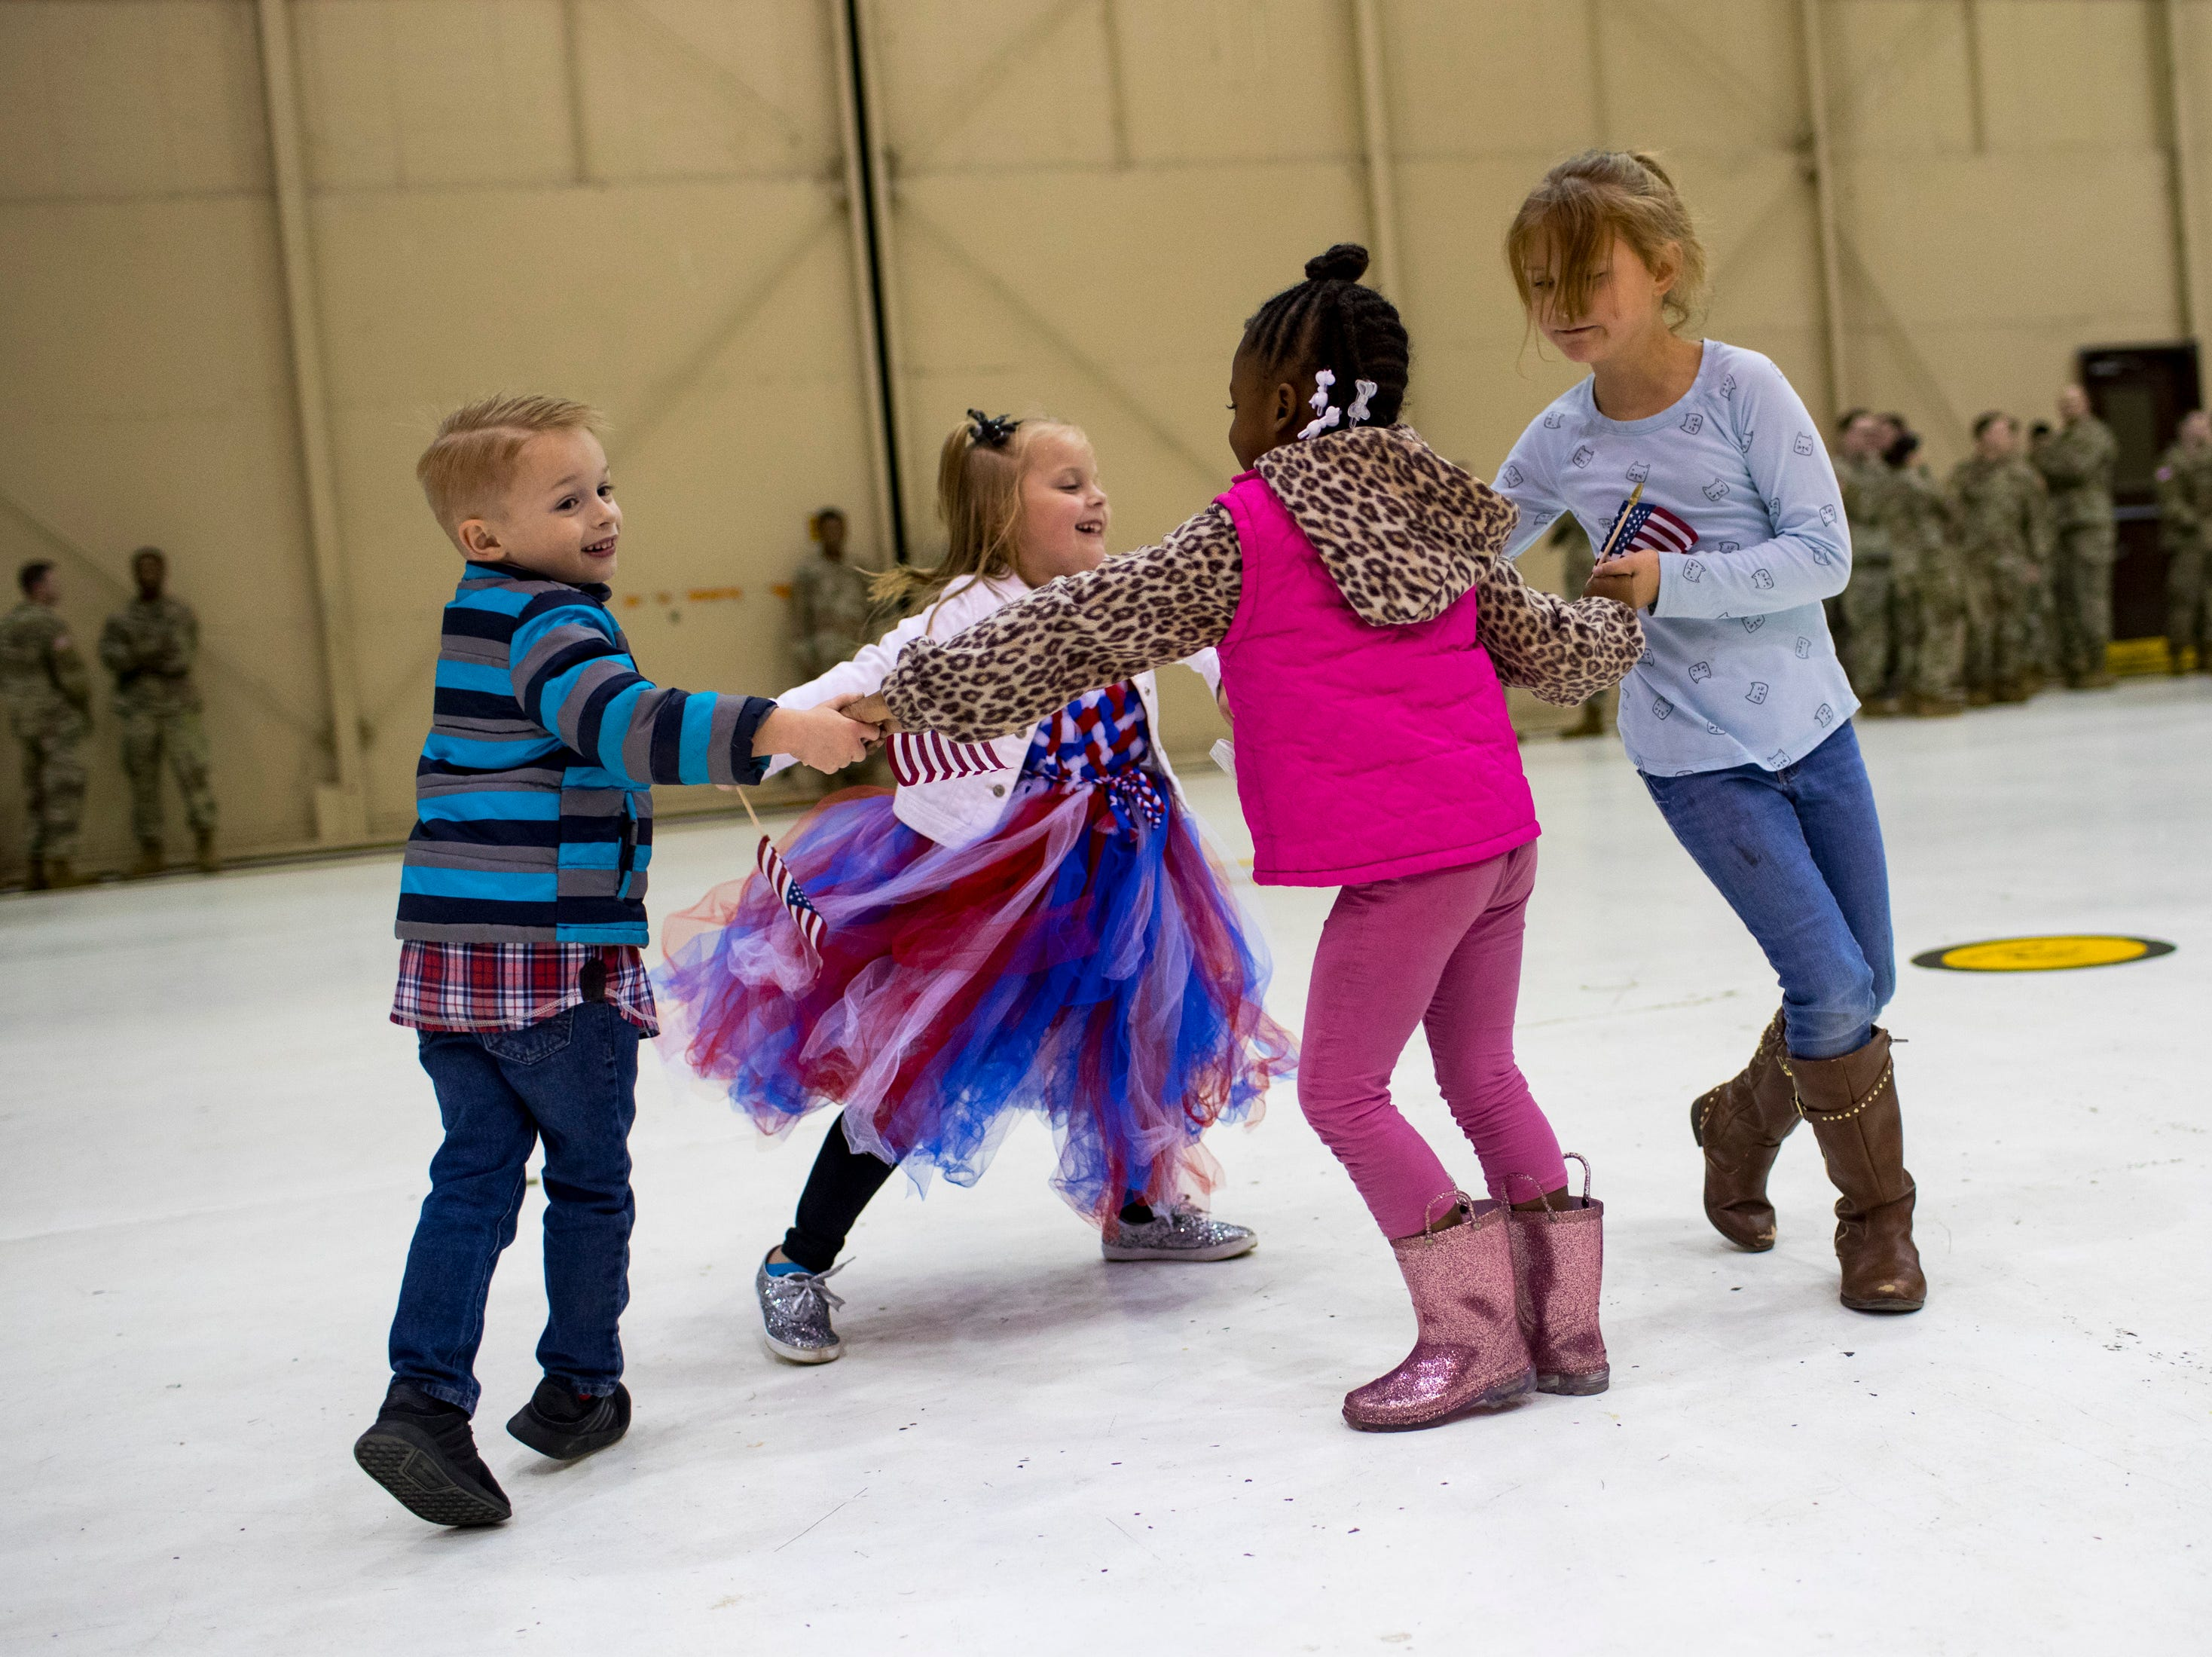 Ryan Purvis, 5, left to right, Khloe Purvis, 6, Faith Hill, 4, and Abigail Hawk, 9, dance while waiting for their family members to arrive during the welcome home ceremony for the 2nd Battalion, 44th Air Defense Artillery Regiment and 101st Airborne Division at Fort Campbell in the early hours of Monday, Nov. 19, 2018. The soldiers were returning from a 9-month deployment in Afghanistan.